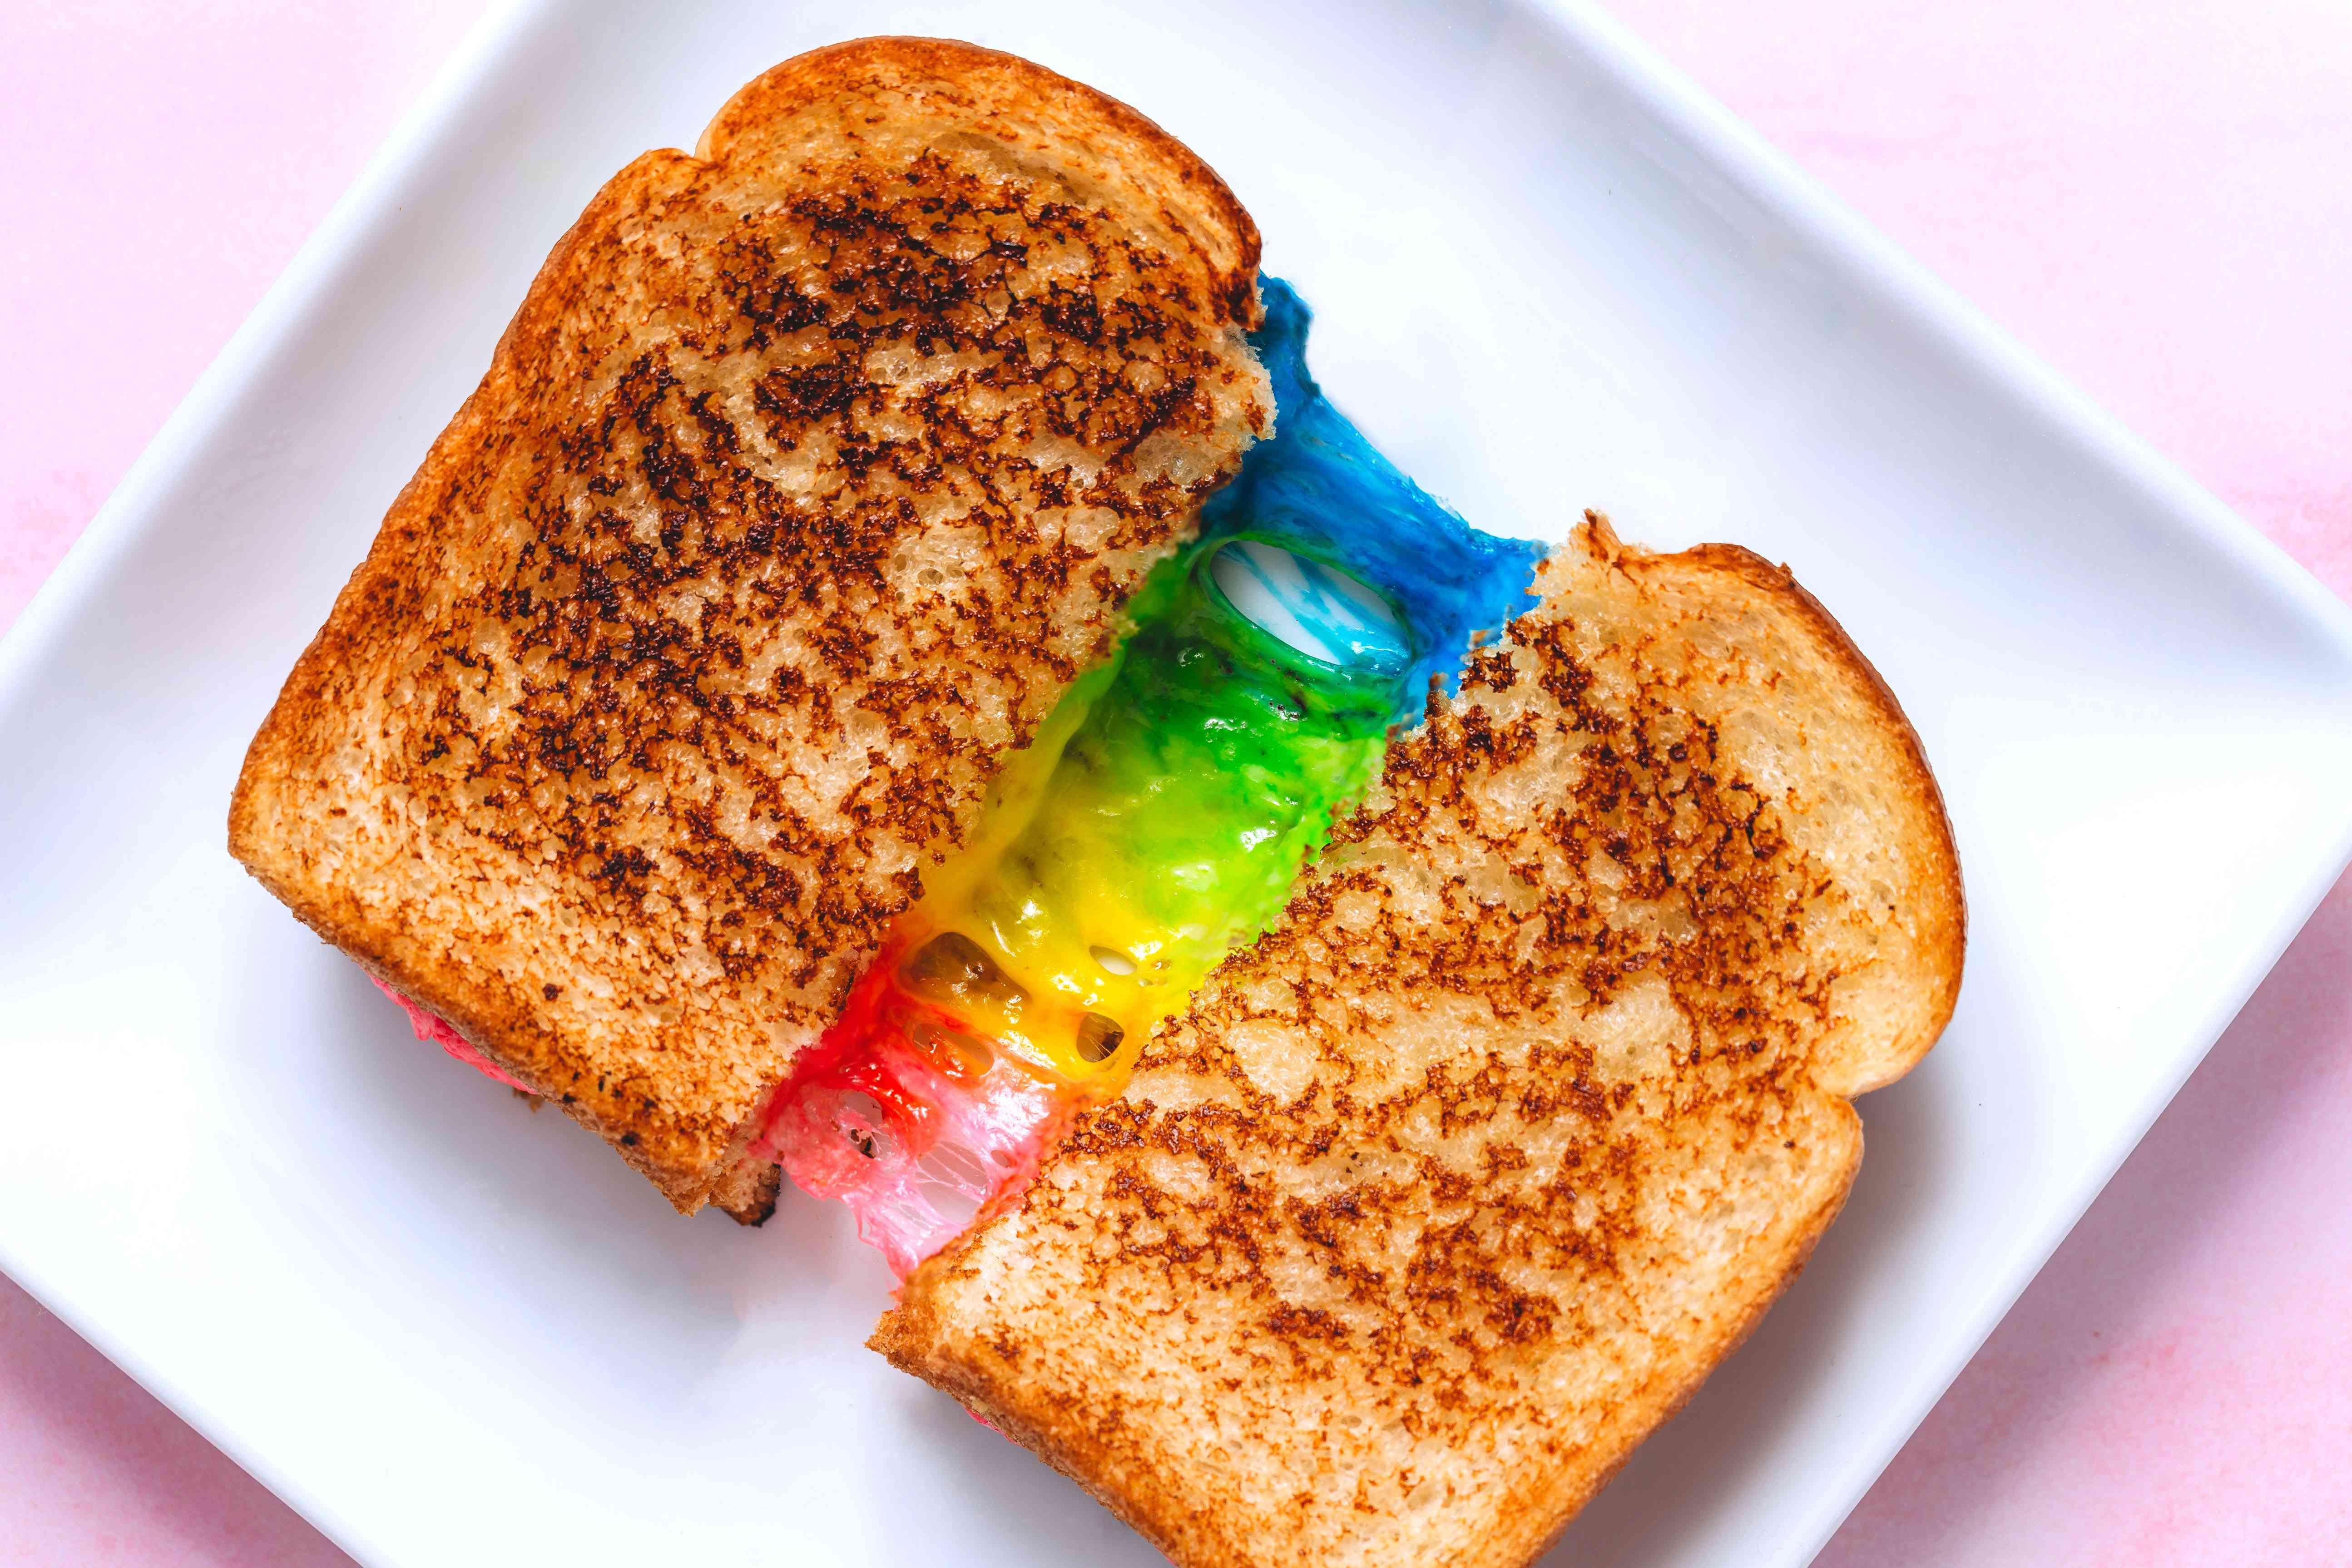 rainbow grilled cheese cut in half, on a plate, pulled apart to reveal blue, green, yellow, and pink cheese